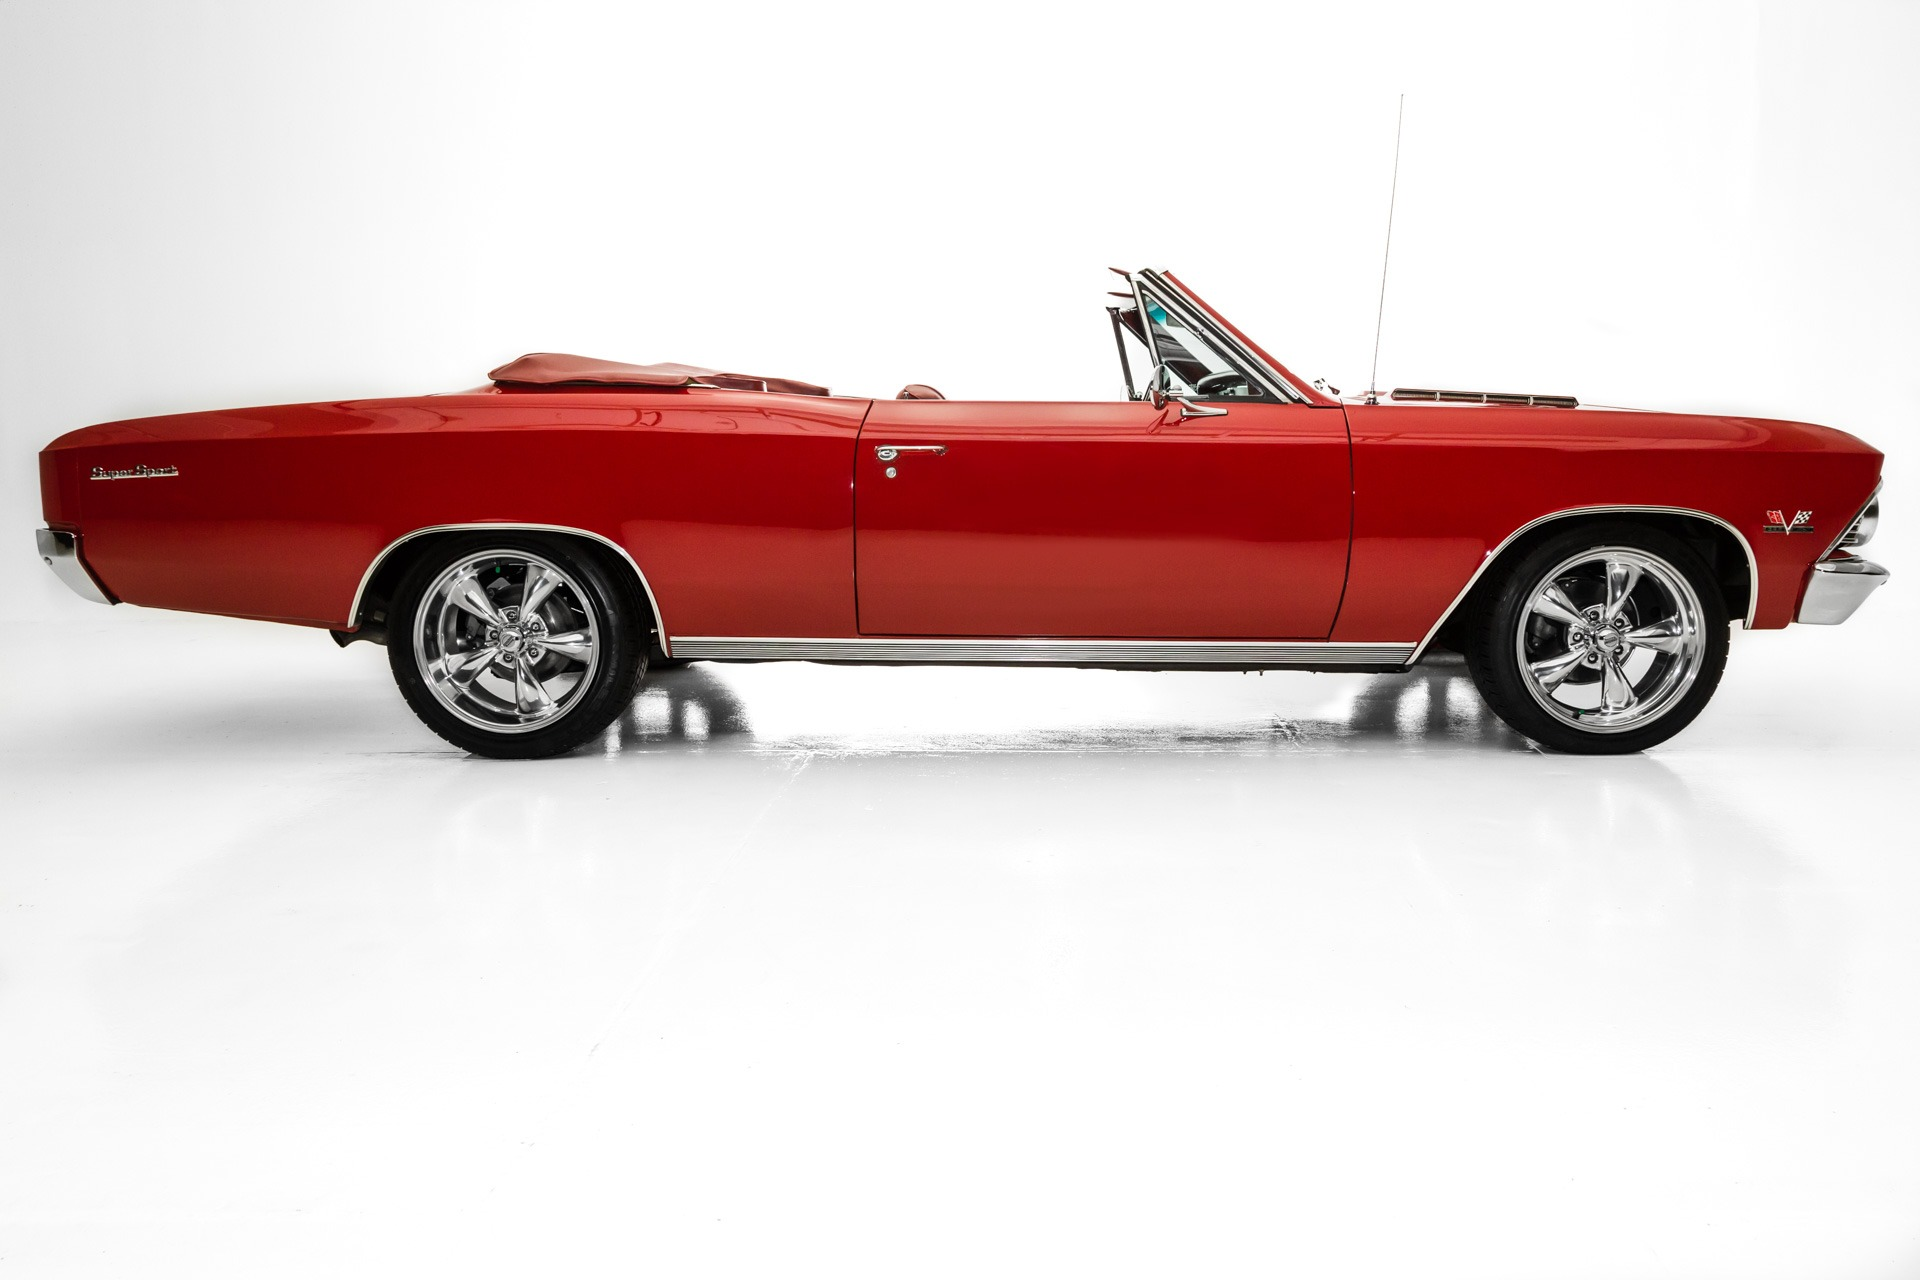 1966 Chevrolet Chevelle SS Options, Awesome Car - American Dream ...